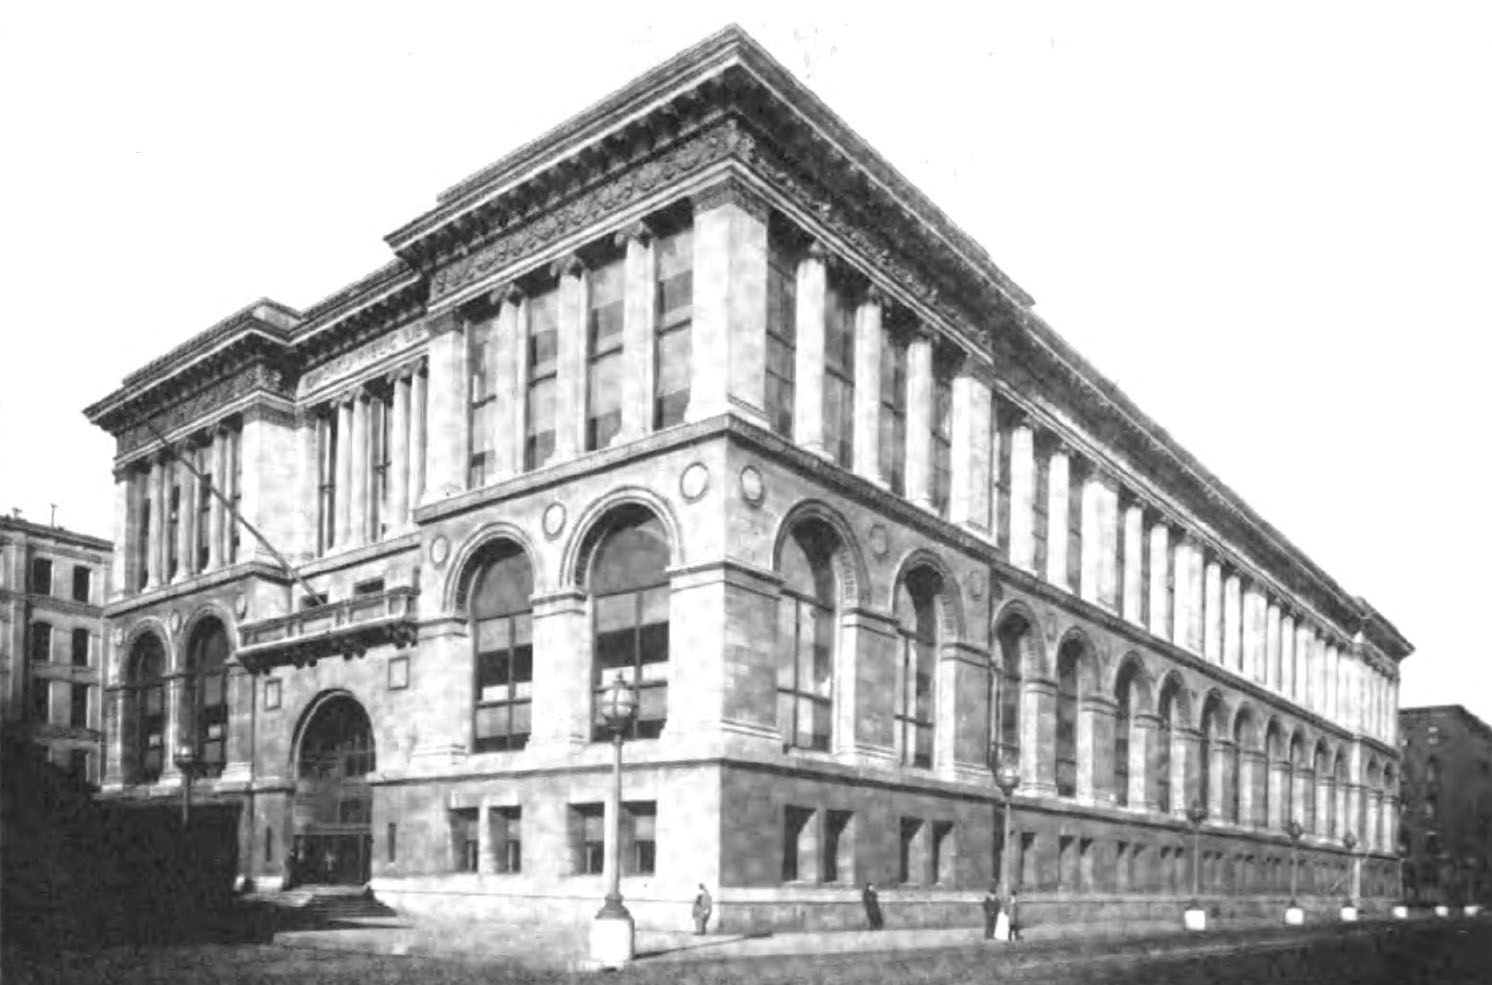 The chicago school library